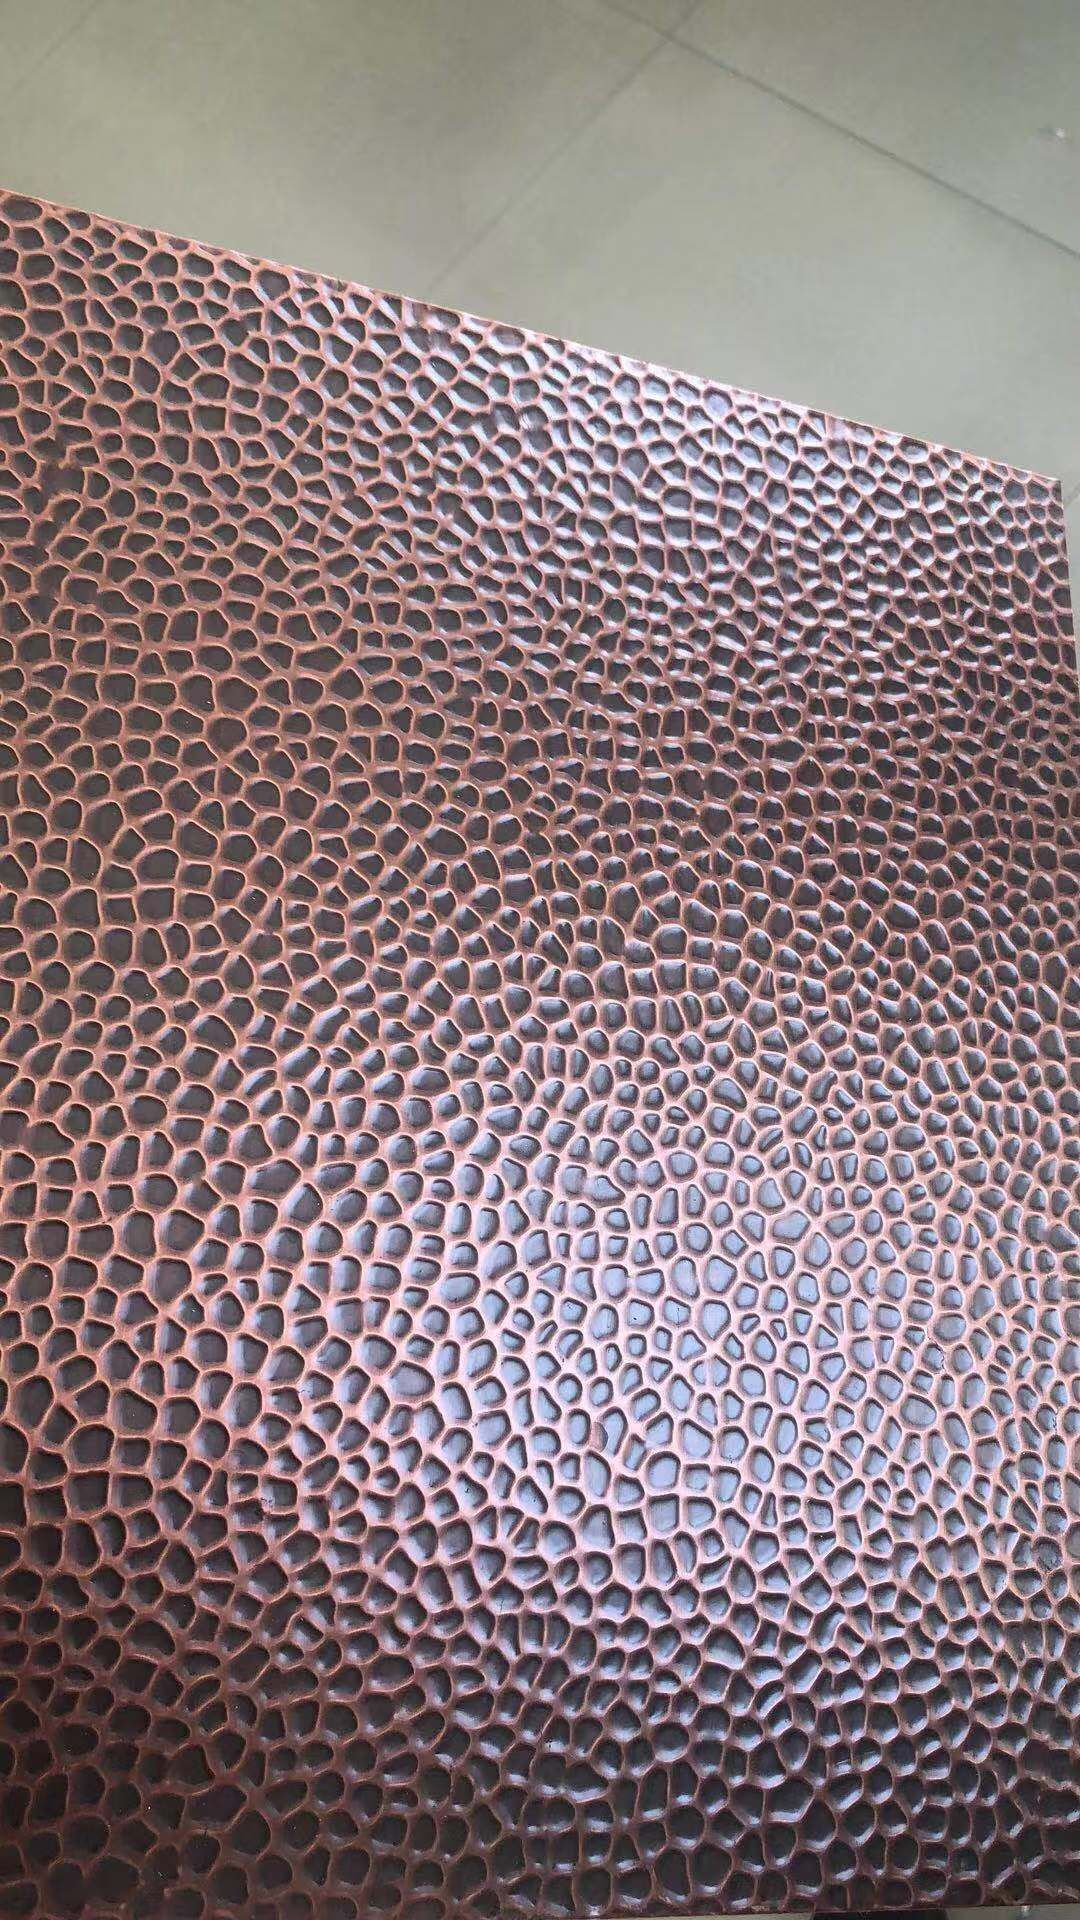 Hammered Copper Sheet Boweite Metal Copper Hammeredmetal Interiordesign Metalwall Metalfurniture Stainless Steel Sheet Decorative Sheets Stainless Steel